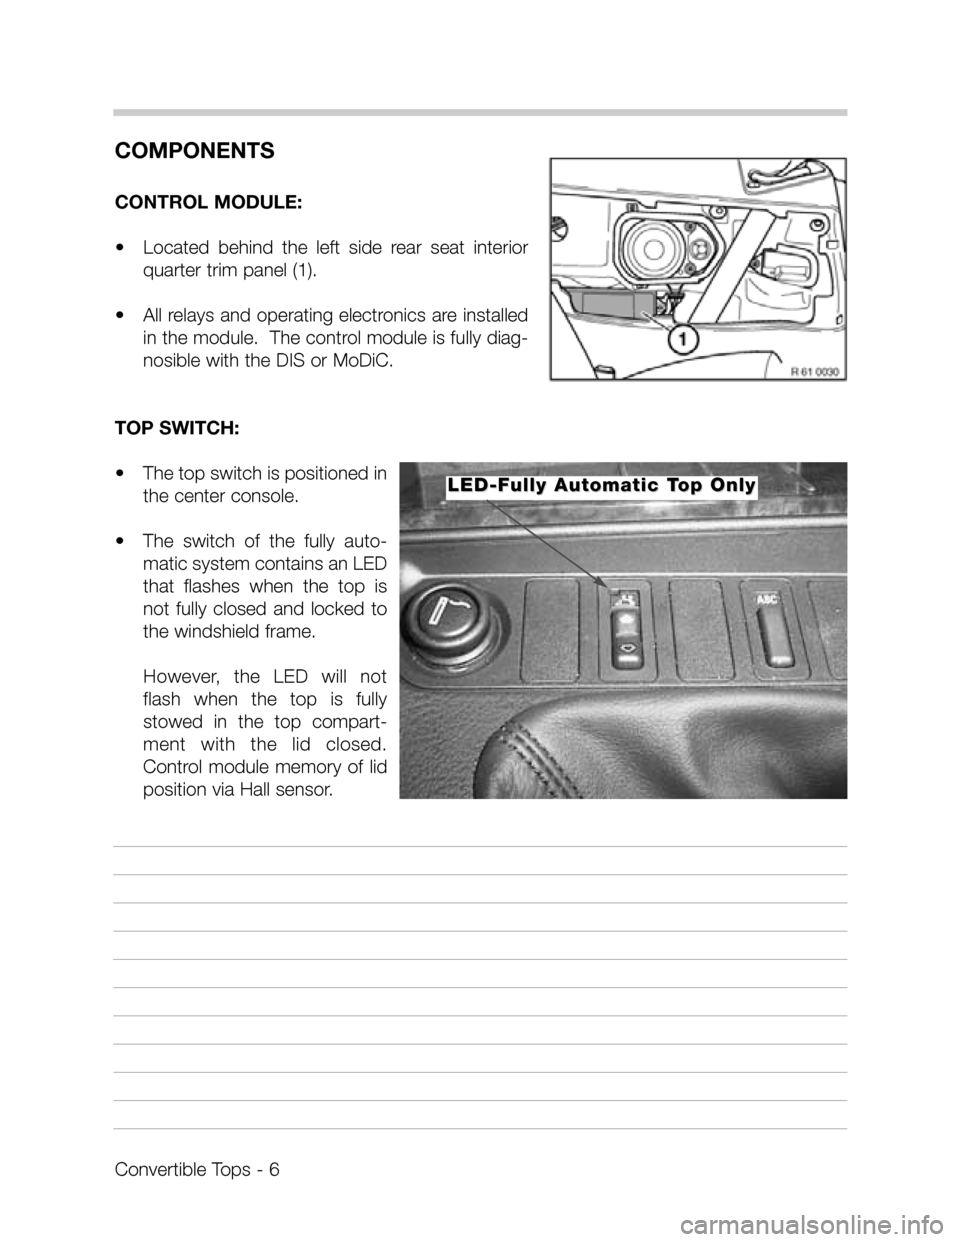 BMW Z3 CONVERTIBLE 1995 E36 Convertible Tops Manual, Page 6